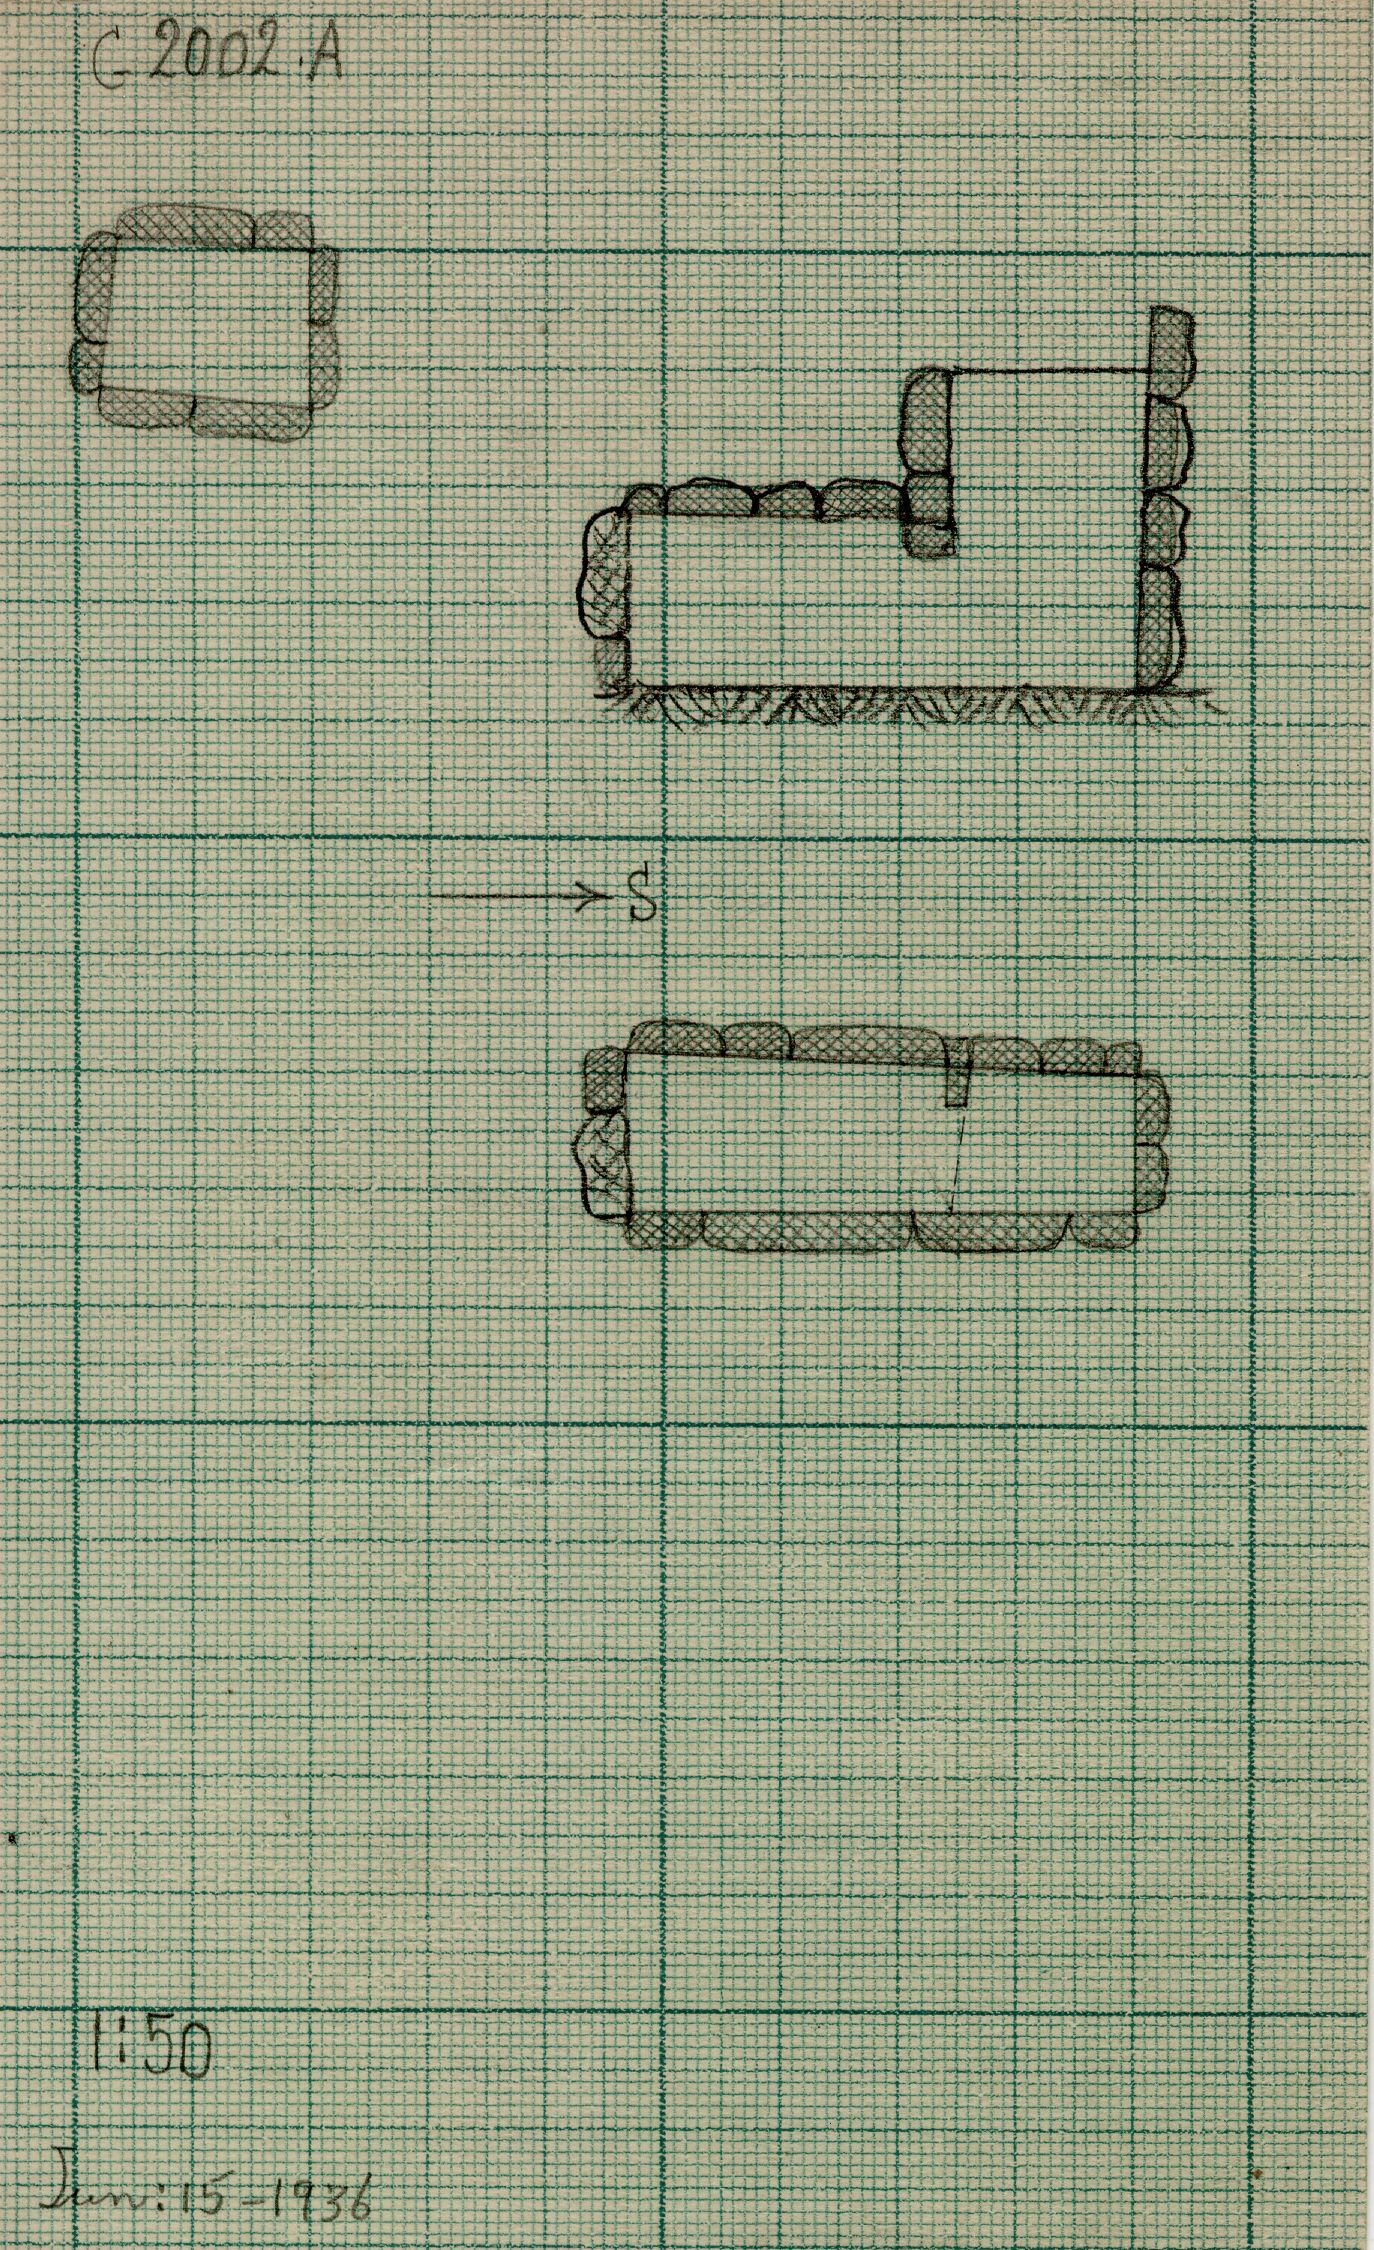 Maps and plans: G 2002, Shaft A